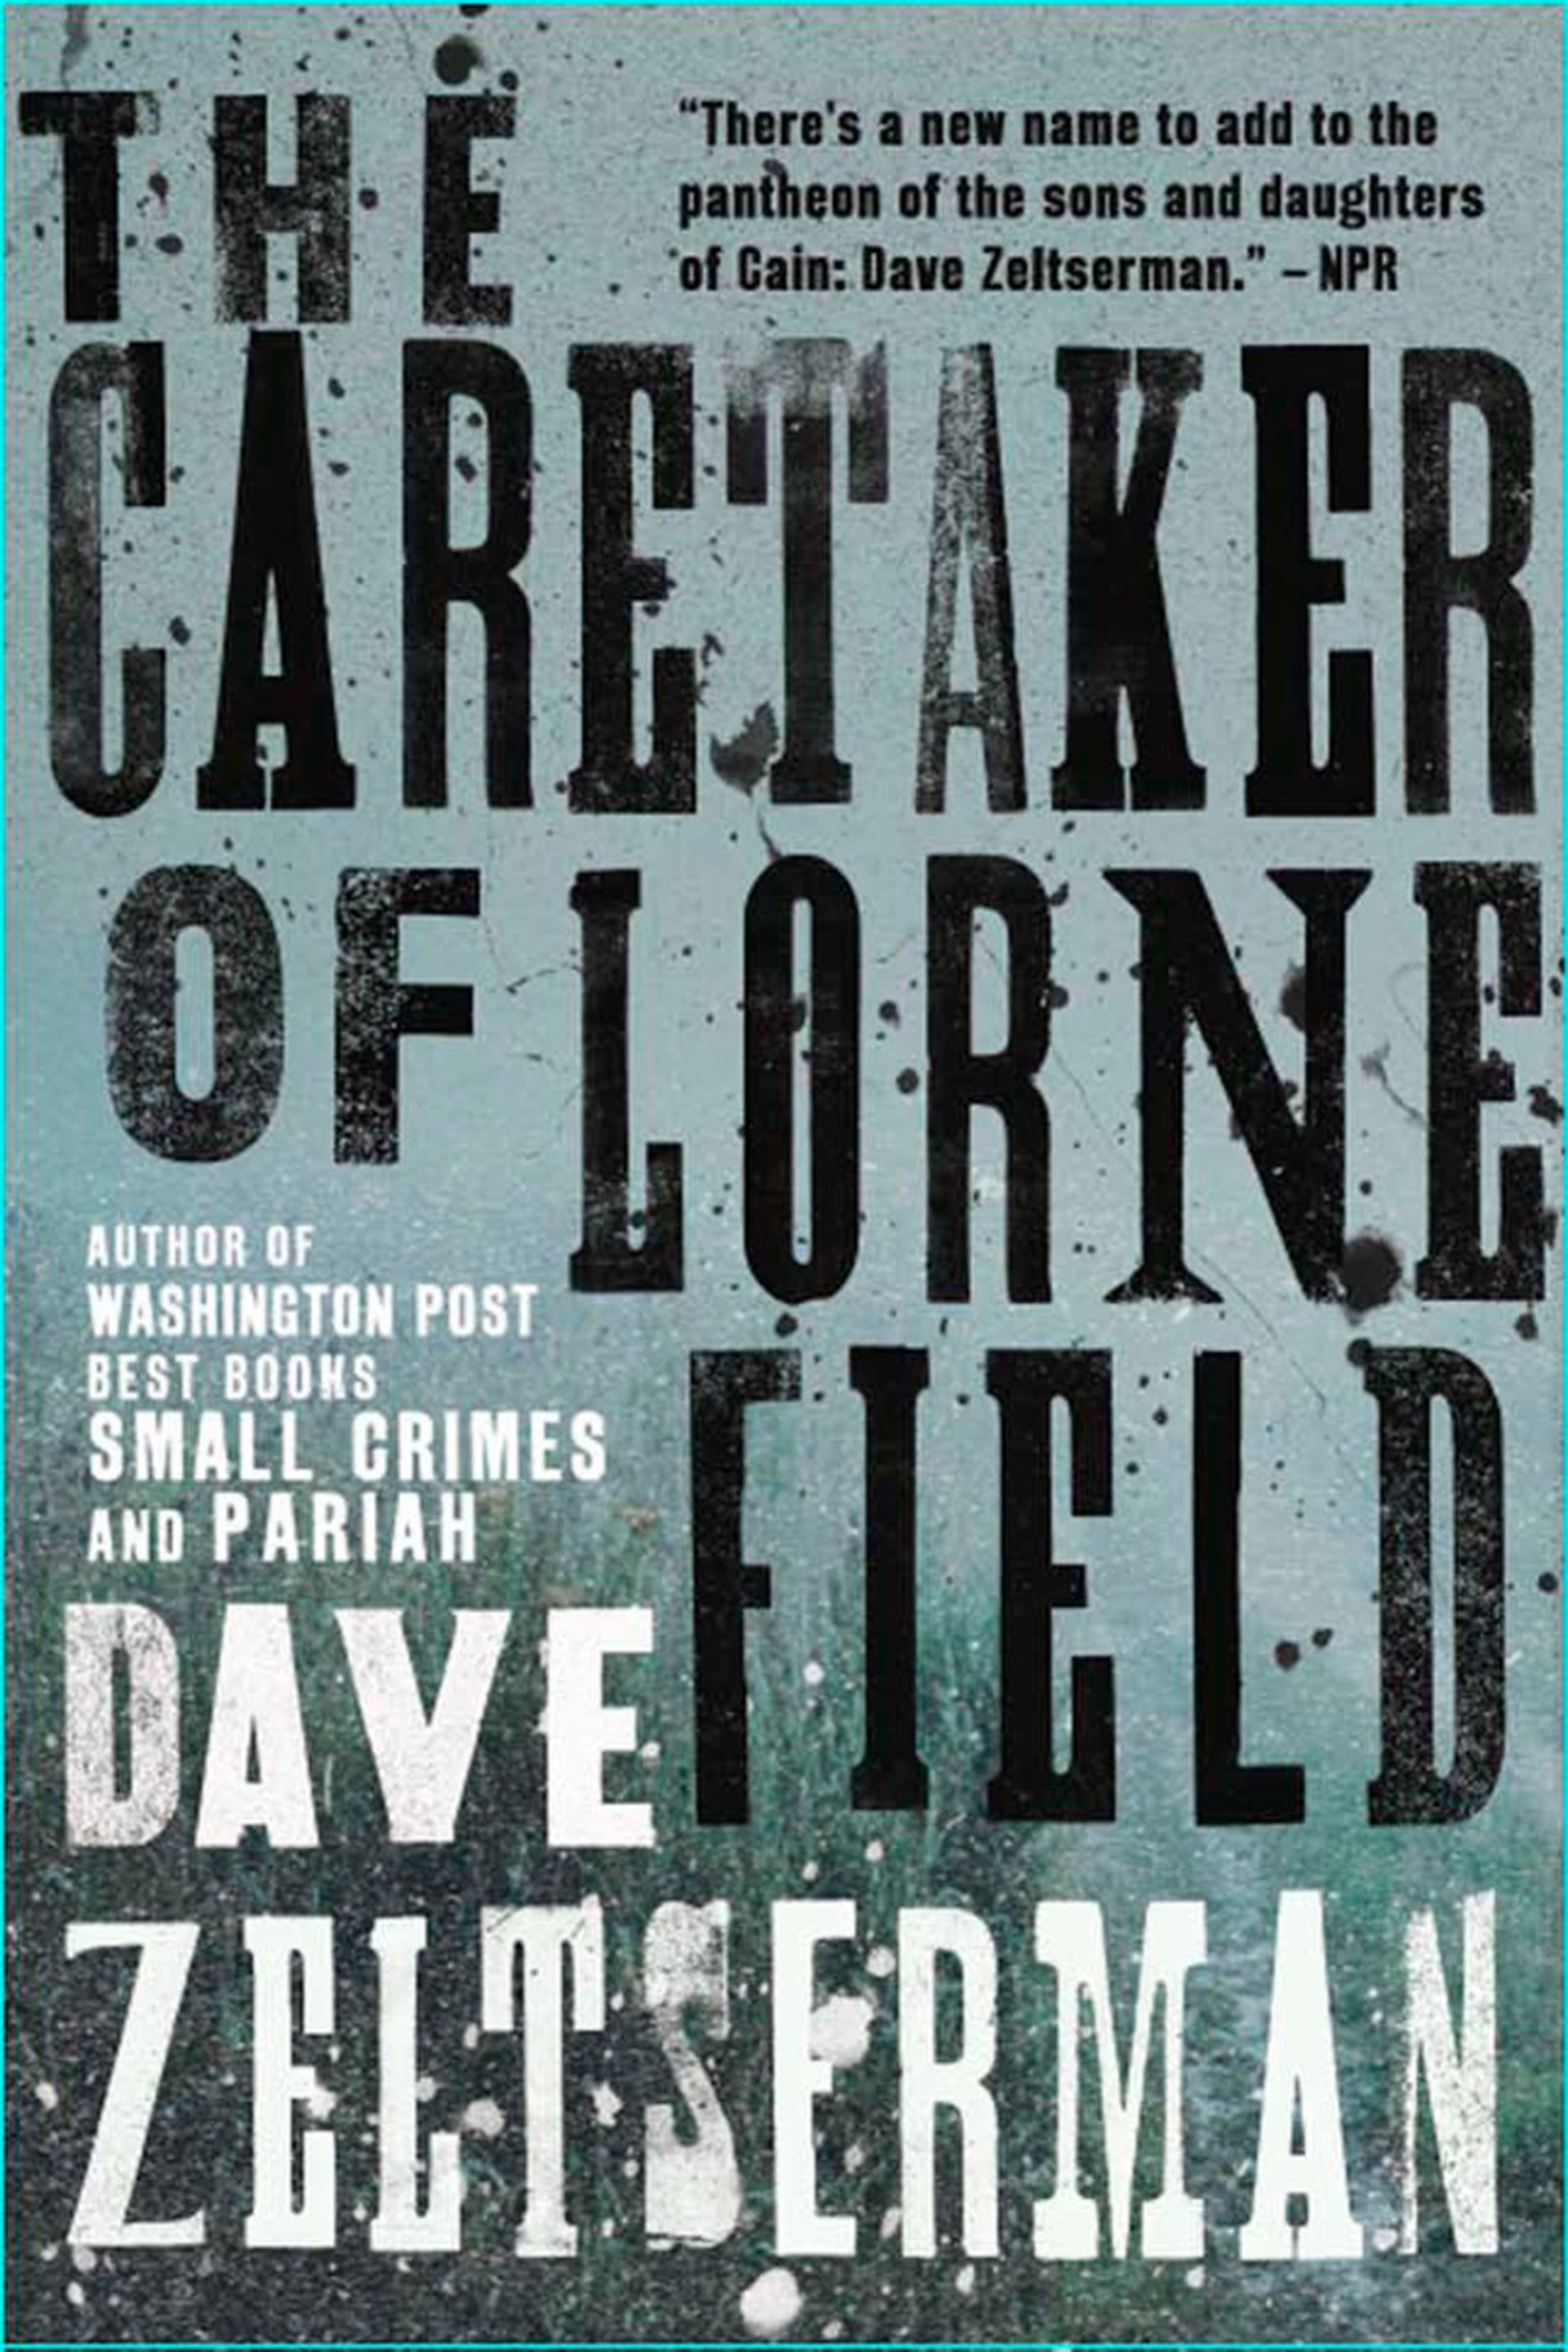 The Caretaker of Lorne Field A Novel